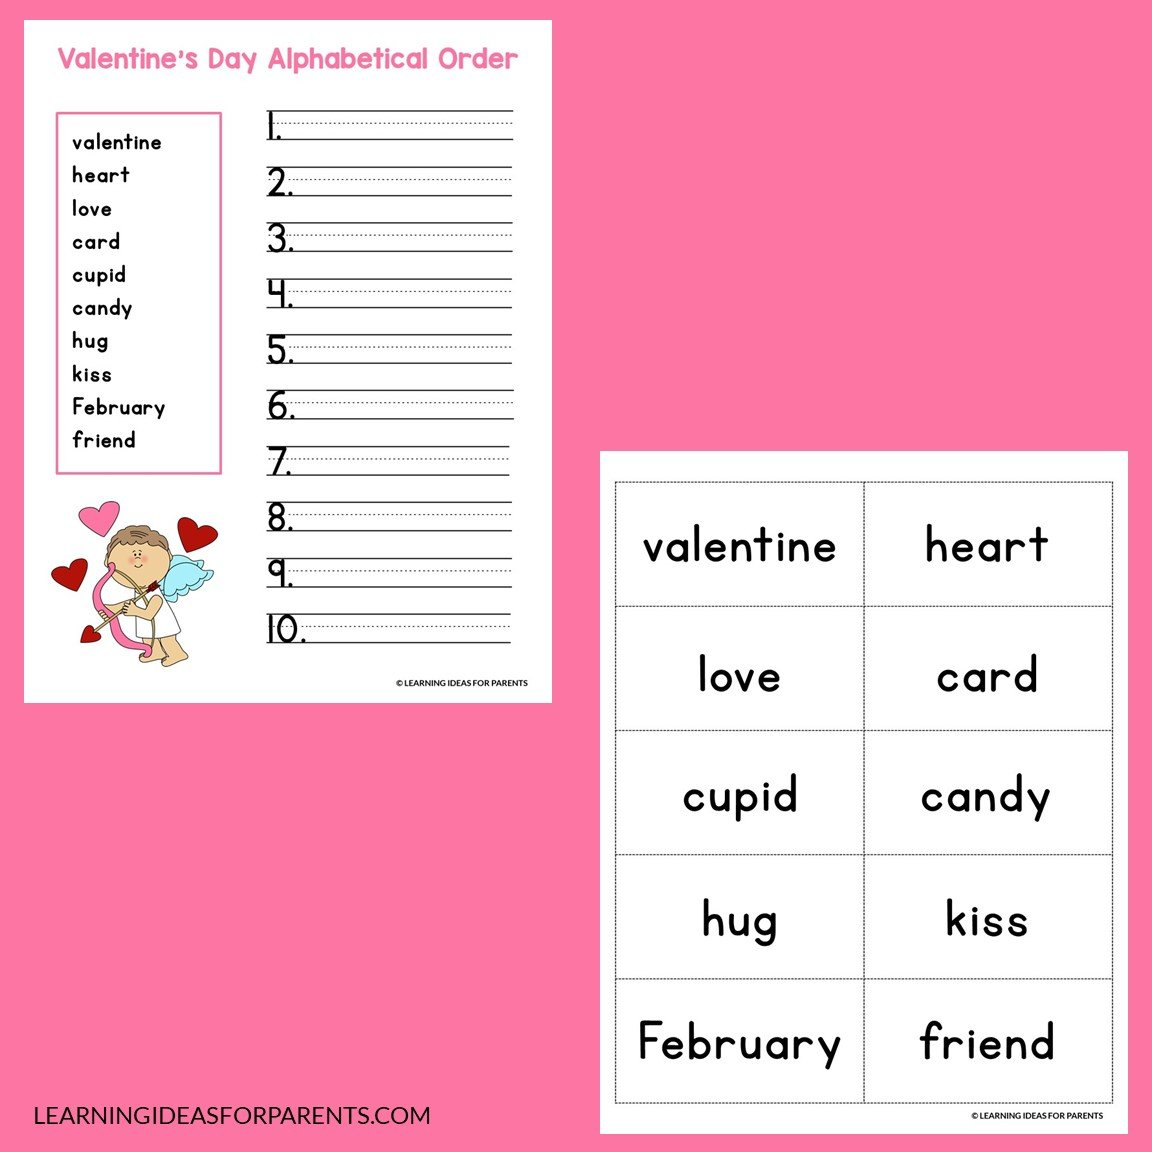 Examples of the Valentine's Day alphabetical order printable activity